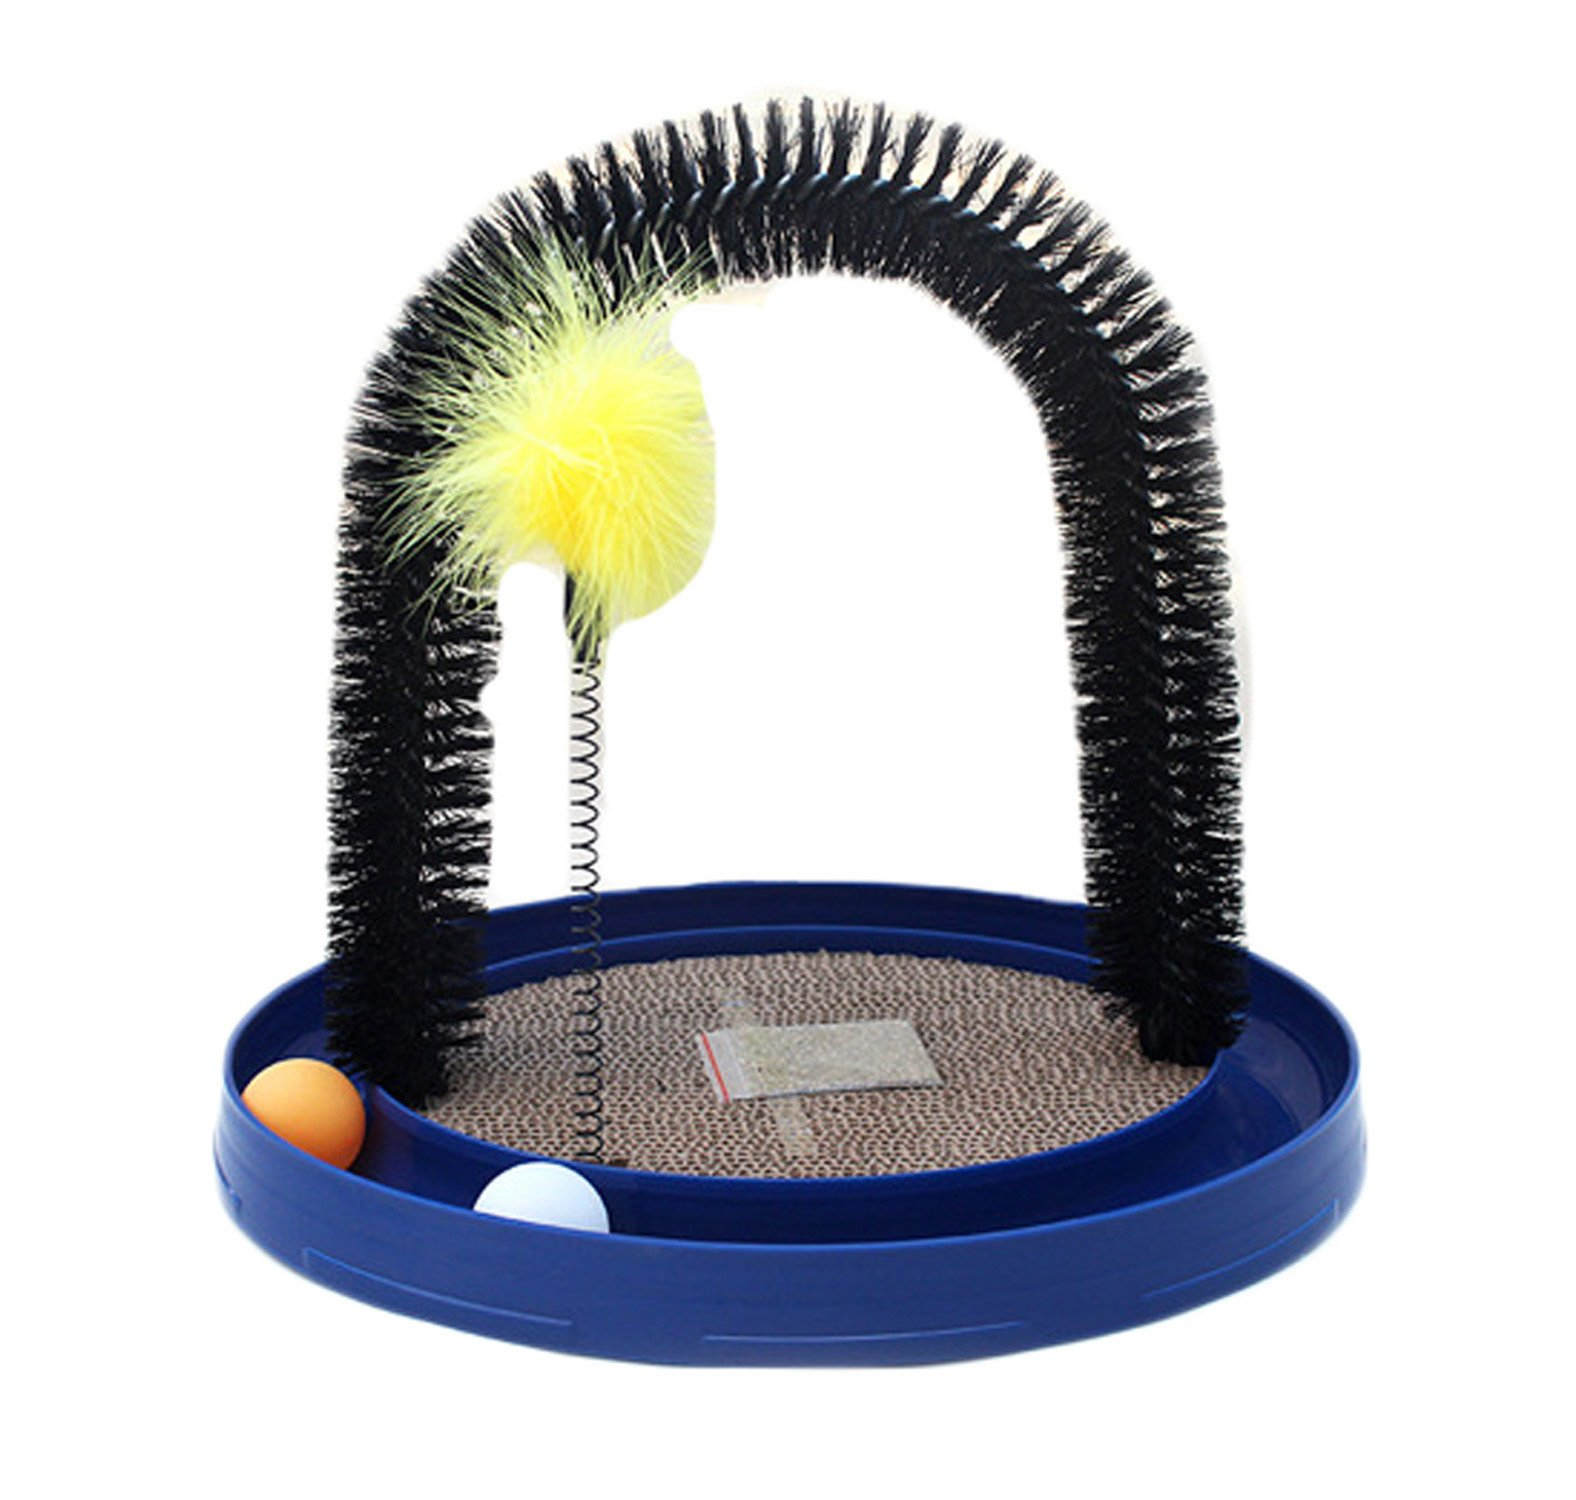 Turbo Scratcher Cat Toy, Cat Turbo Toy Durable and Replaceable with Catnip-Self Groomer And Massager Arch-Interactive Training Exercise Mouse Play Toy with Turbo and Ball,Blue by Donhouse